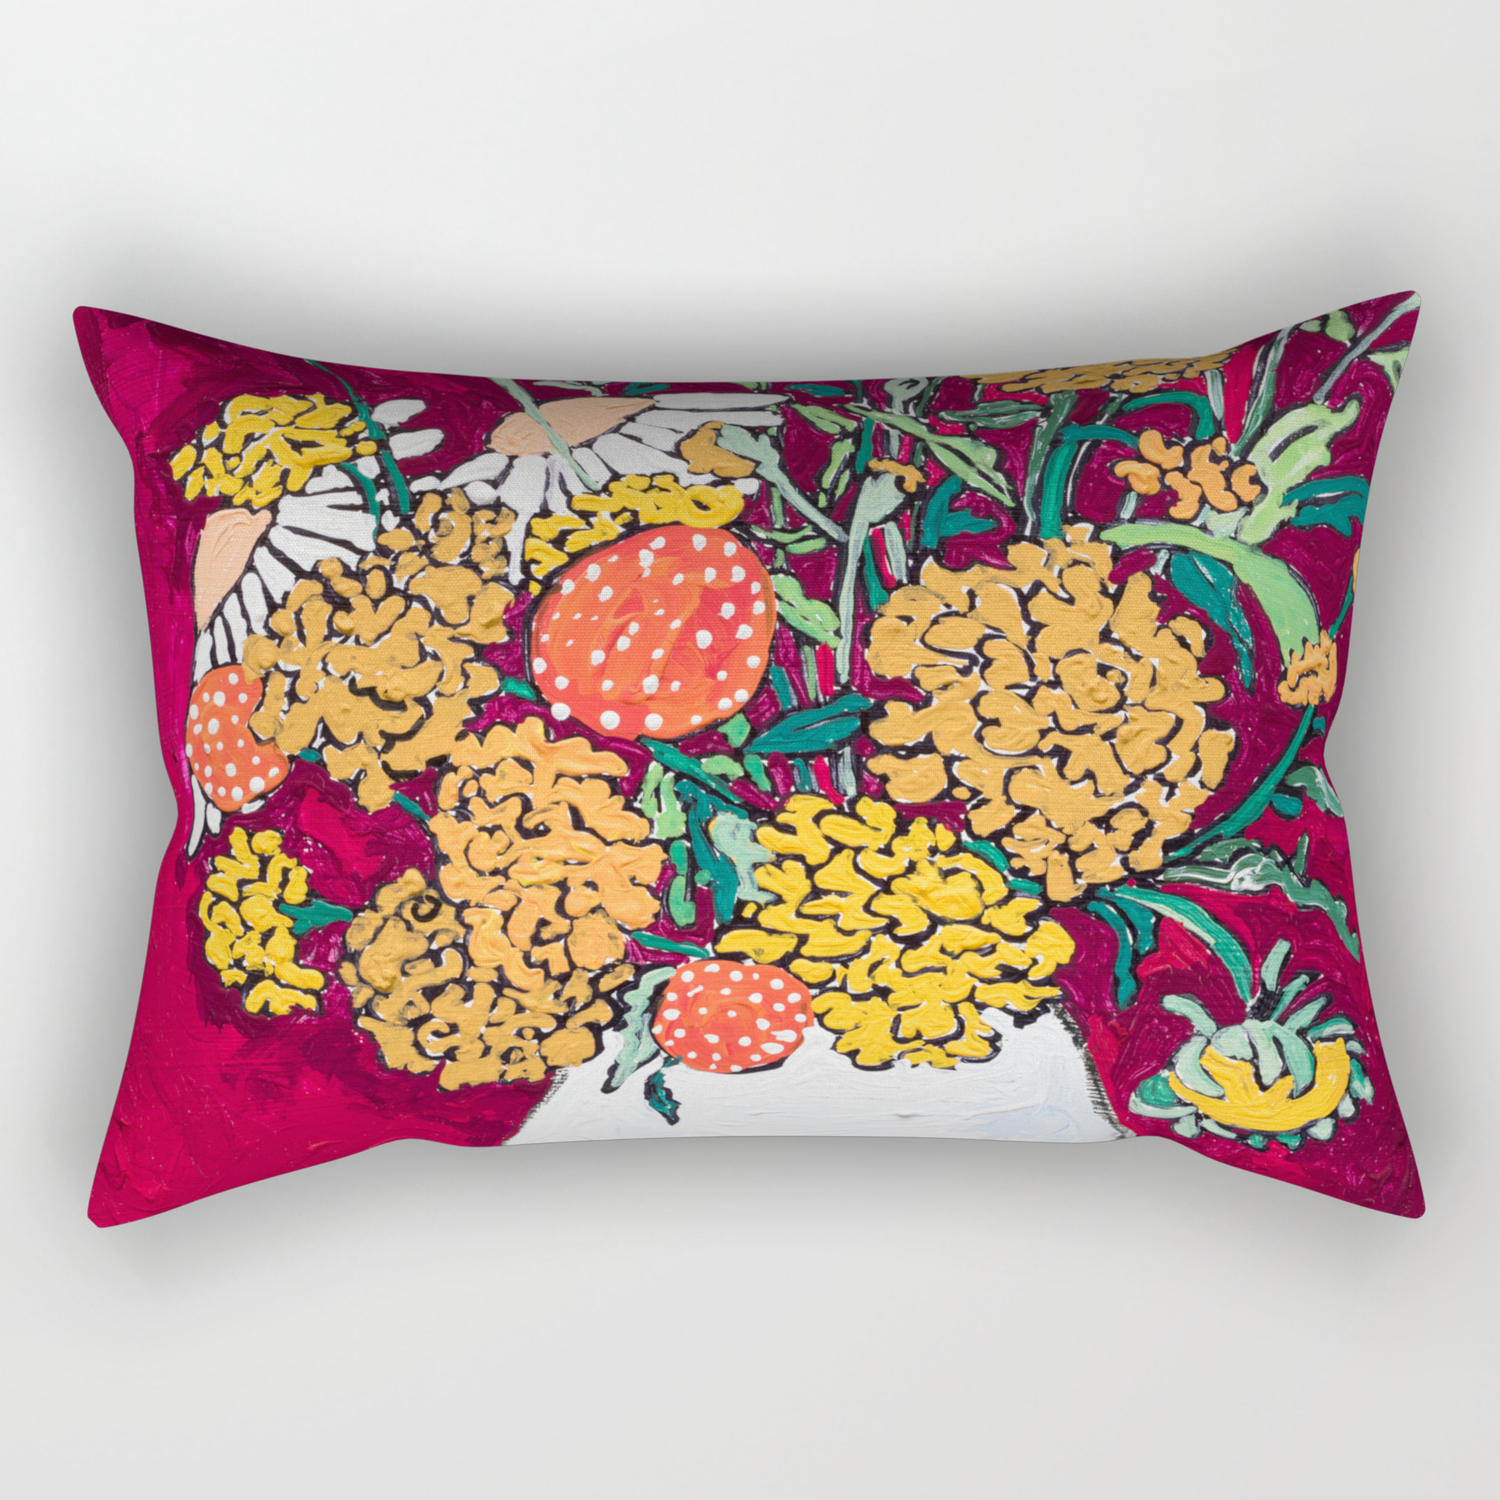 Marigold Daisy And Wildflower Bouquet Fall Floral Still Life Painting On Eggplant Purple Rectangular Pillow By Larameintjes Society6